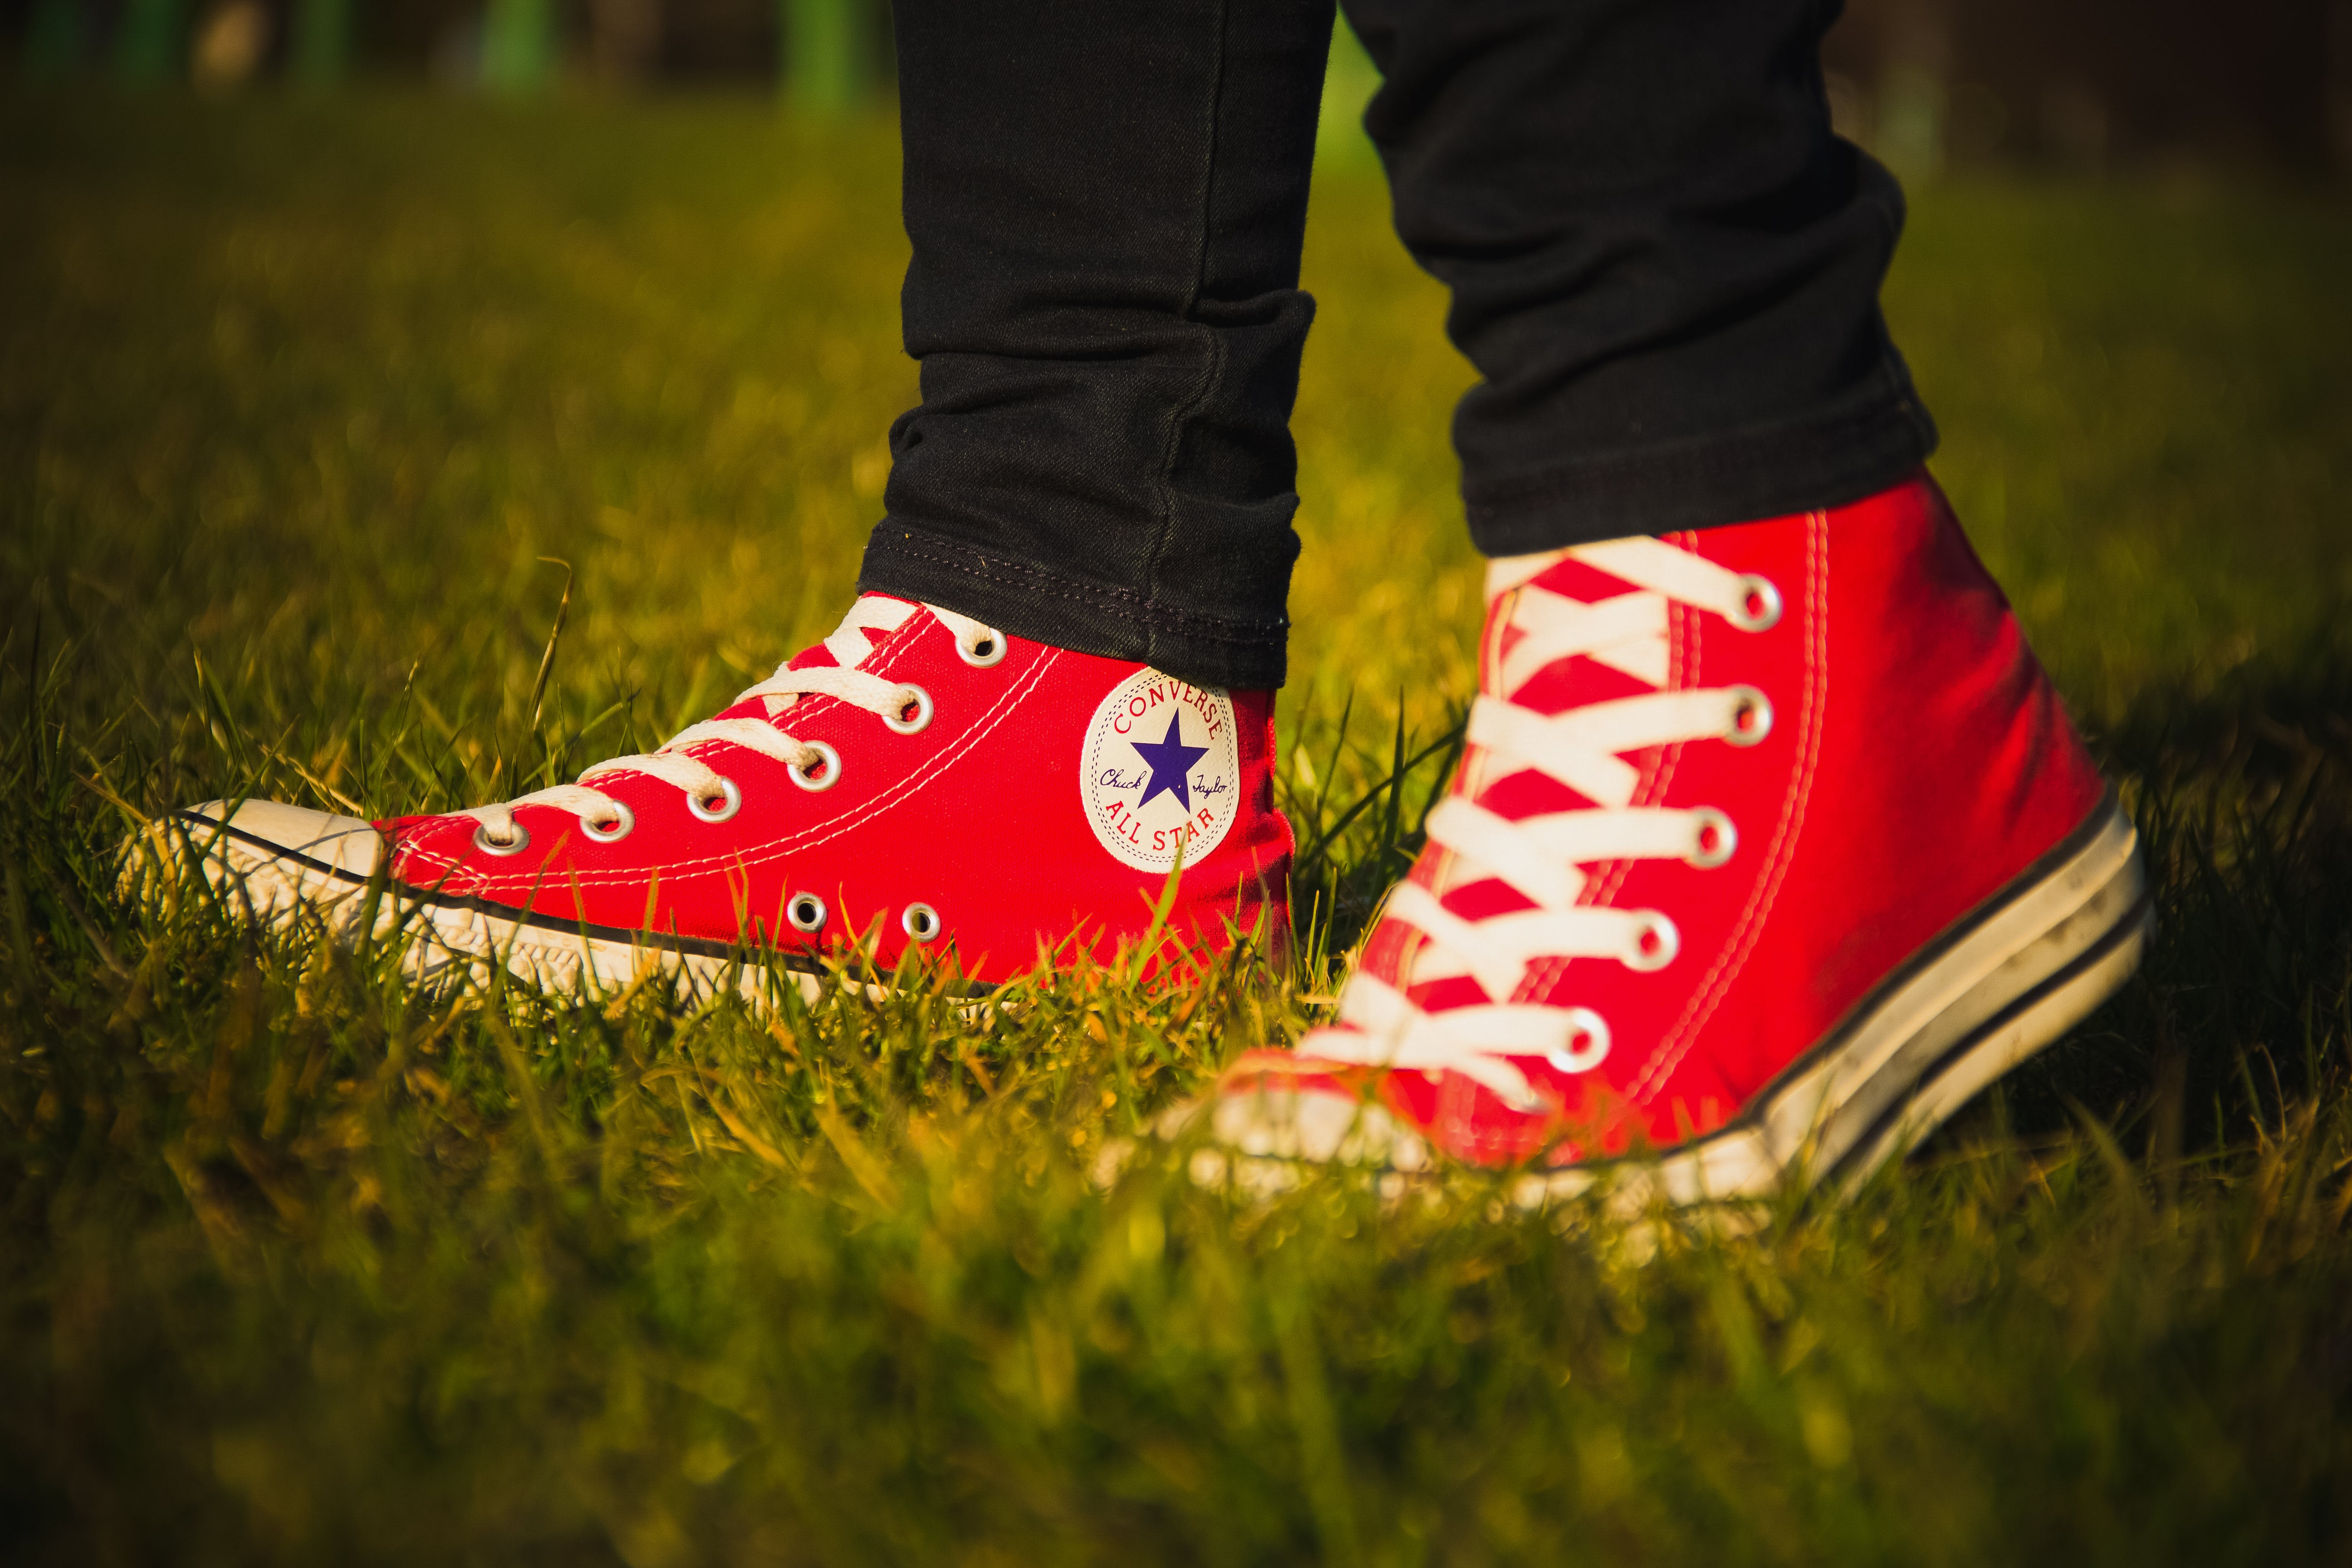 Free stock photo of grass, shoes, logo, converse